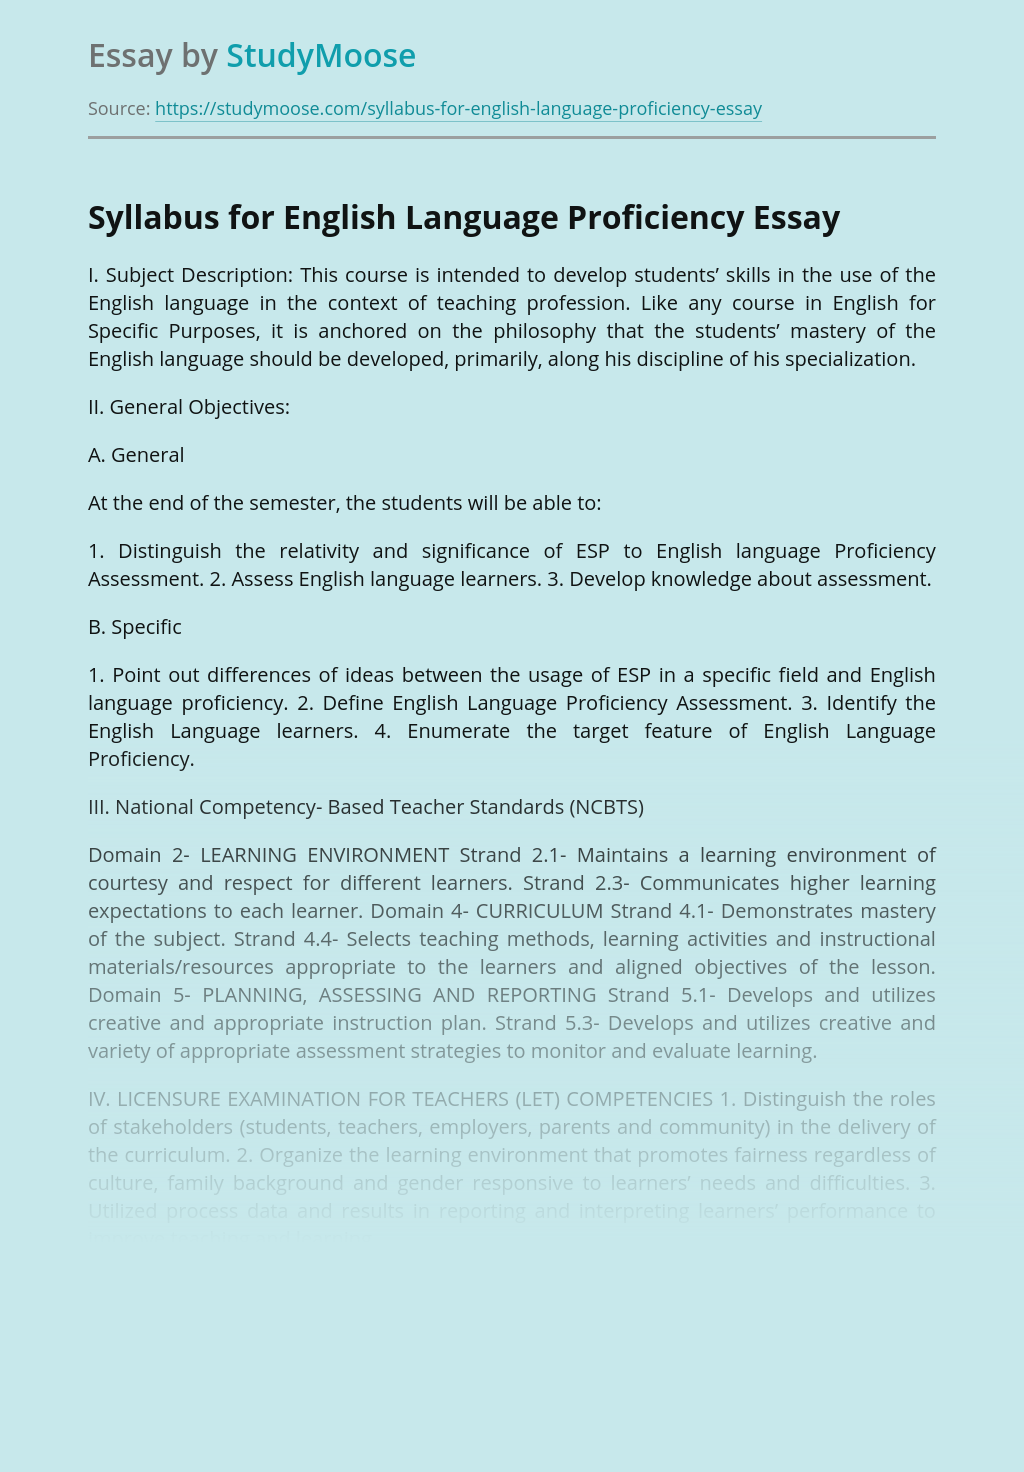 Syllabus for English Language Proficiency